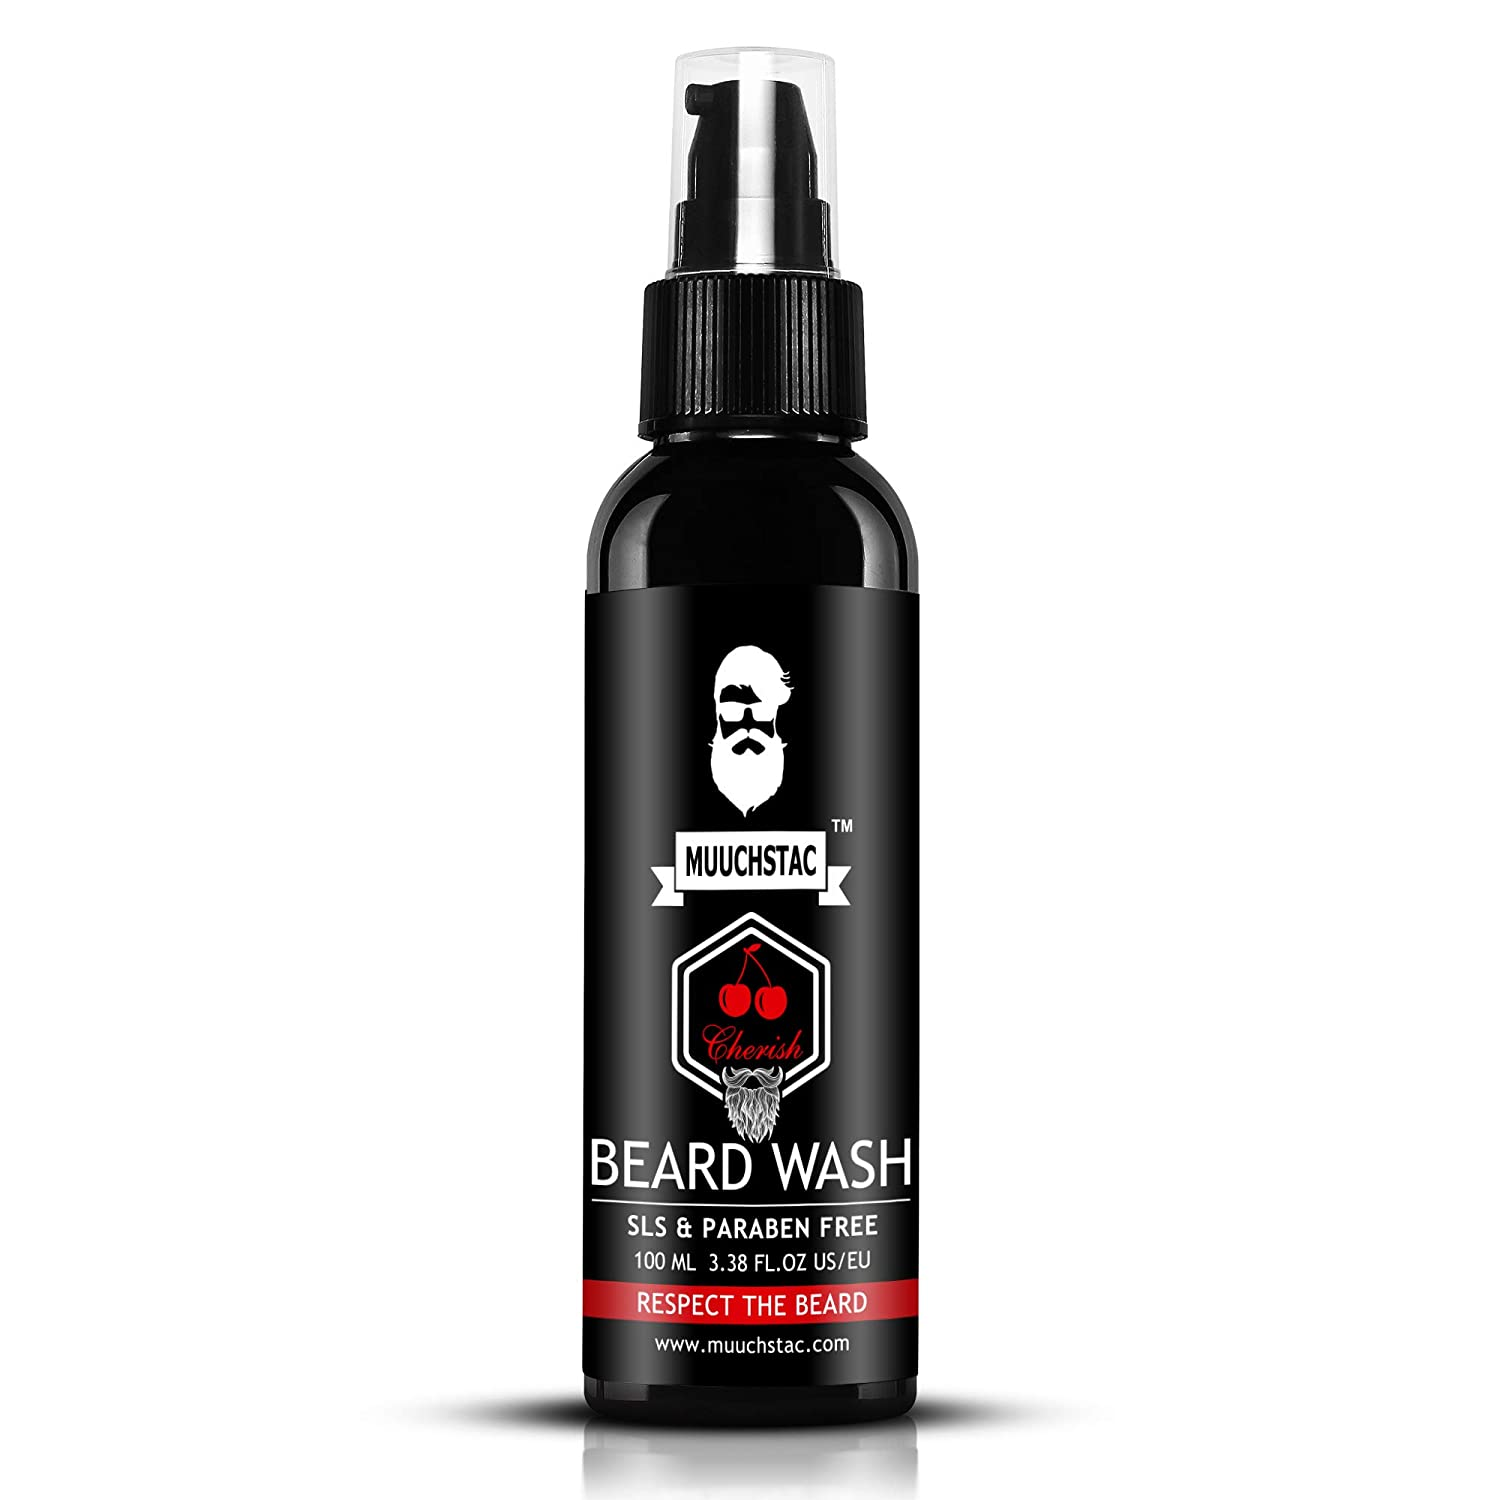 Muuchstac Beard Growth Oil and Cherish Beard Wash - Beard Growth Kit (160ml) - (Pack of 2)